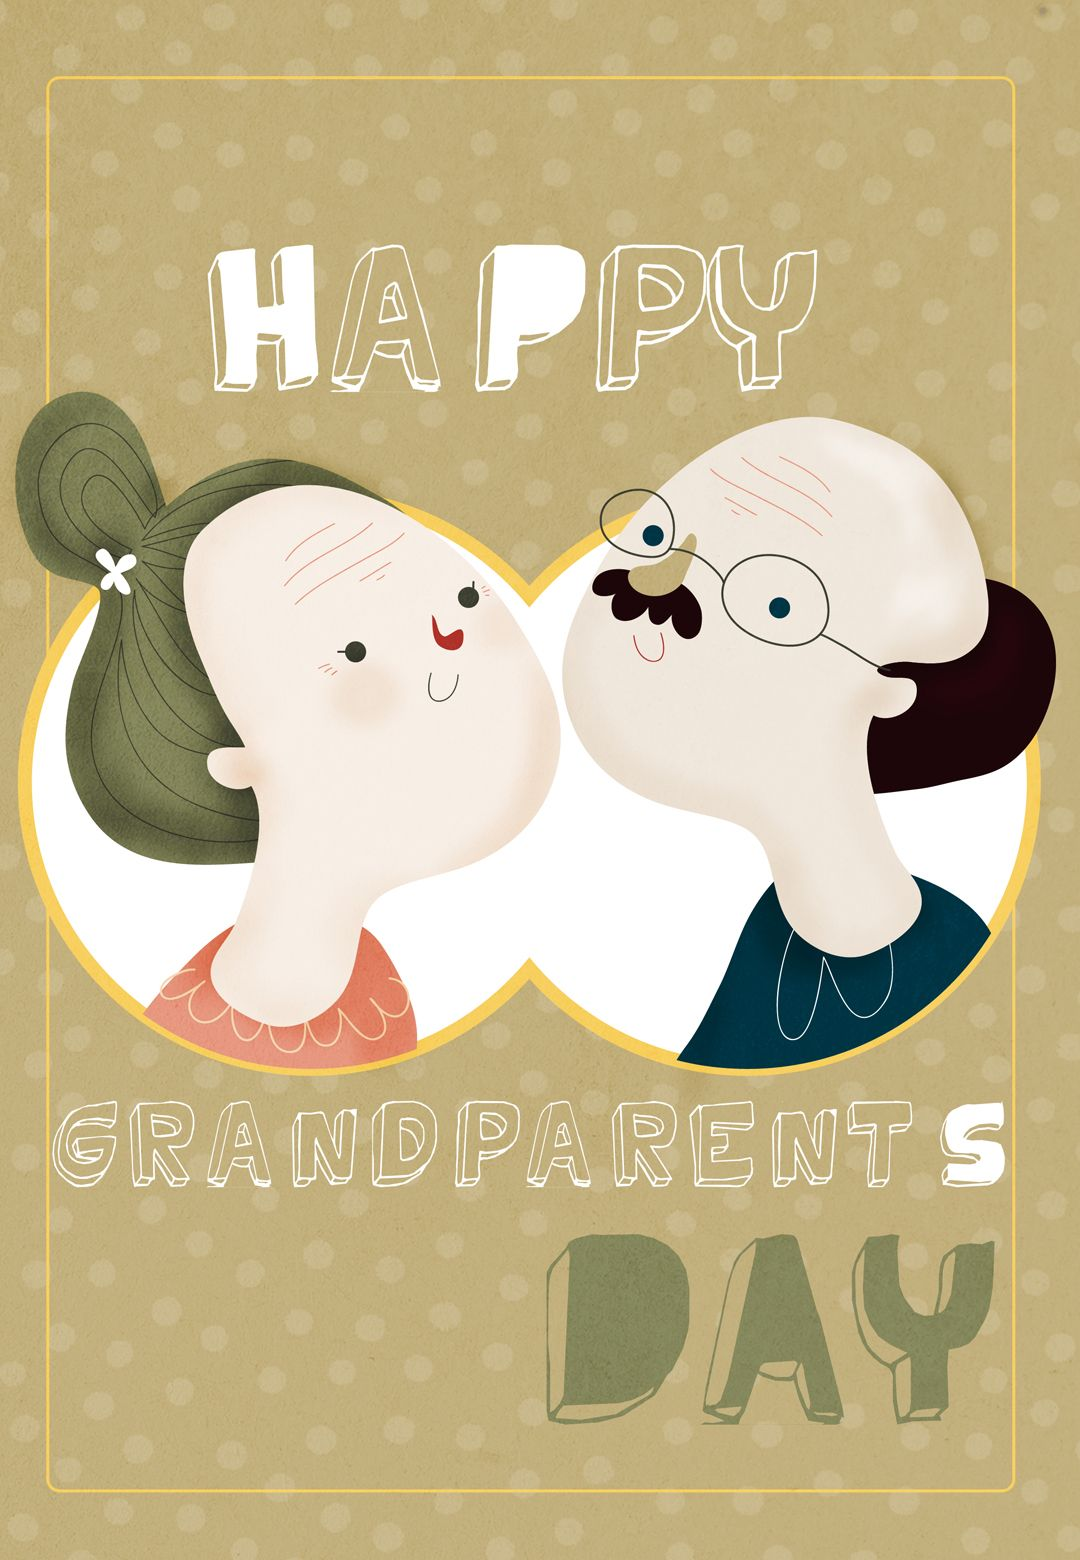 Pin By Greetings Island On Grandparents Day Grandparents Day Cards Happy Grandparents Day Grandparents Day